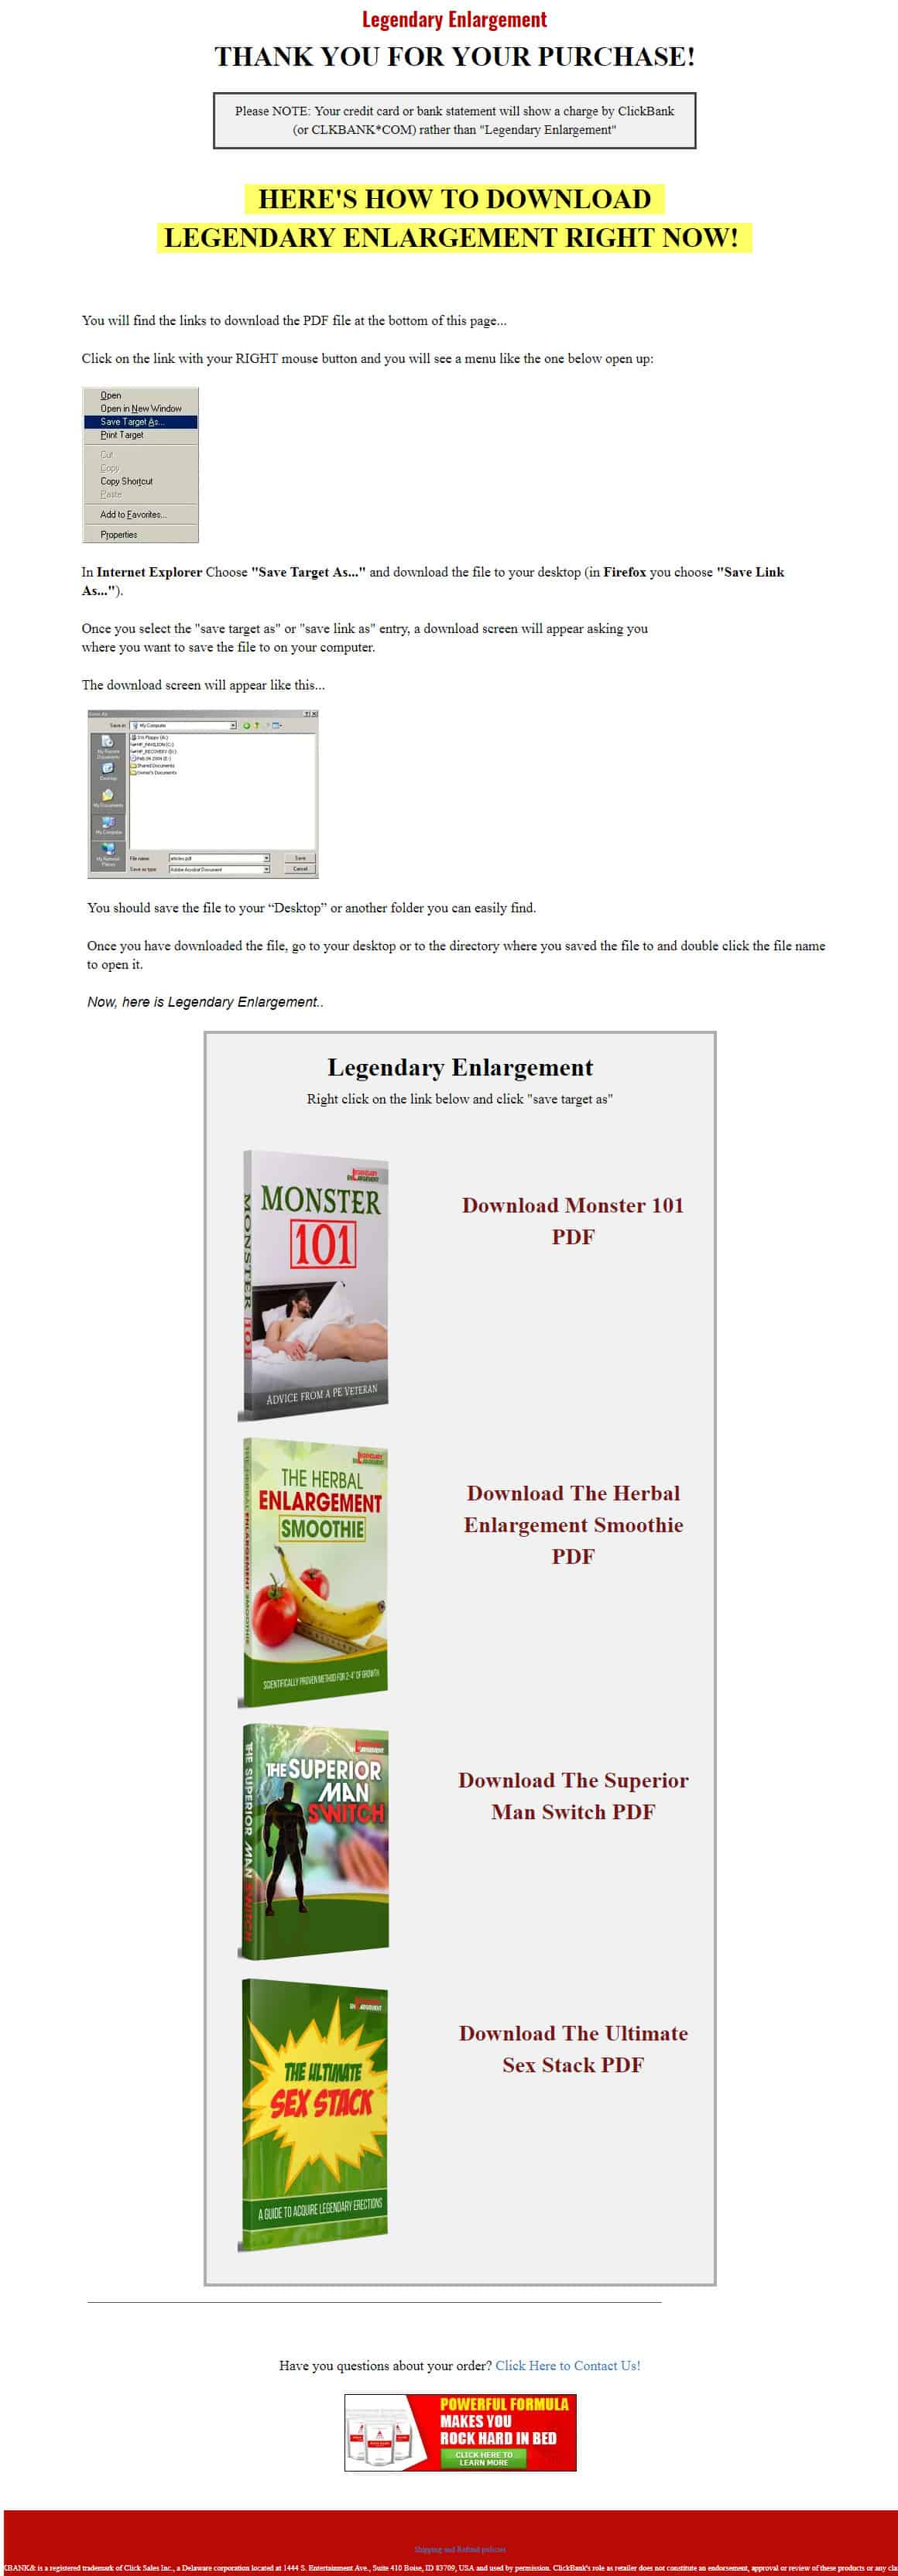 Legendary Enlargement Review: What is the System About?